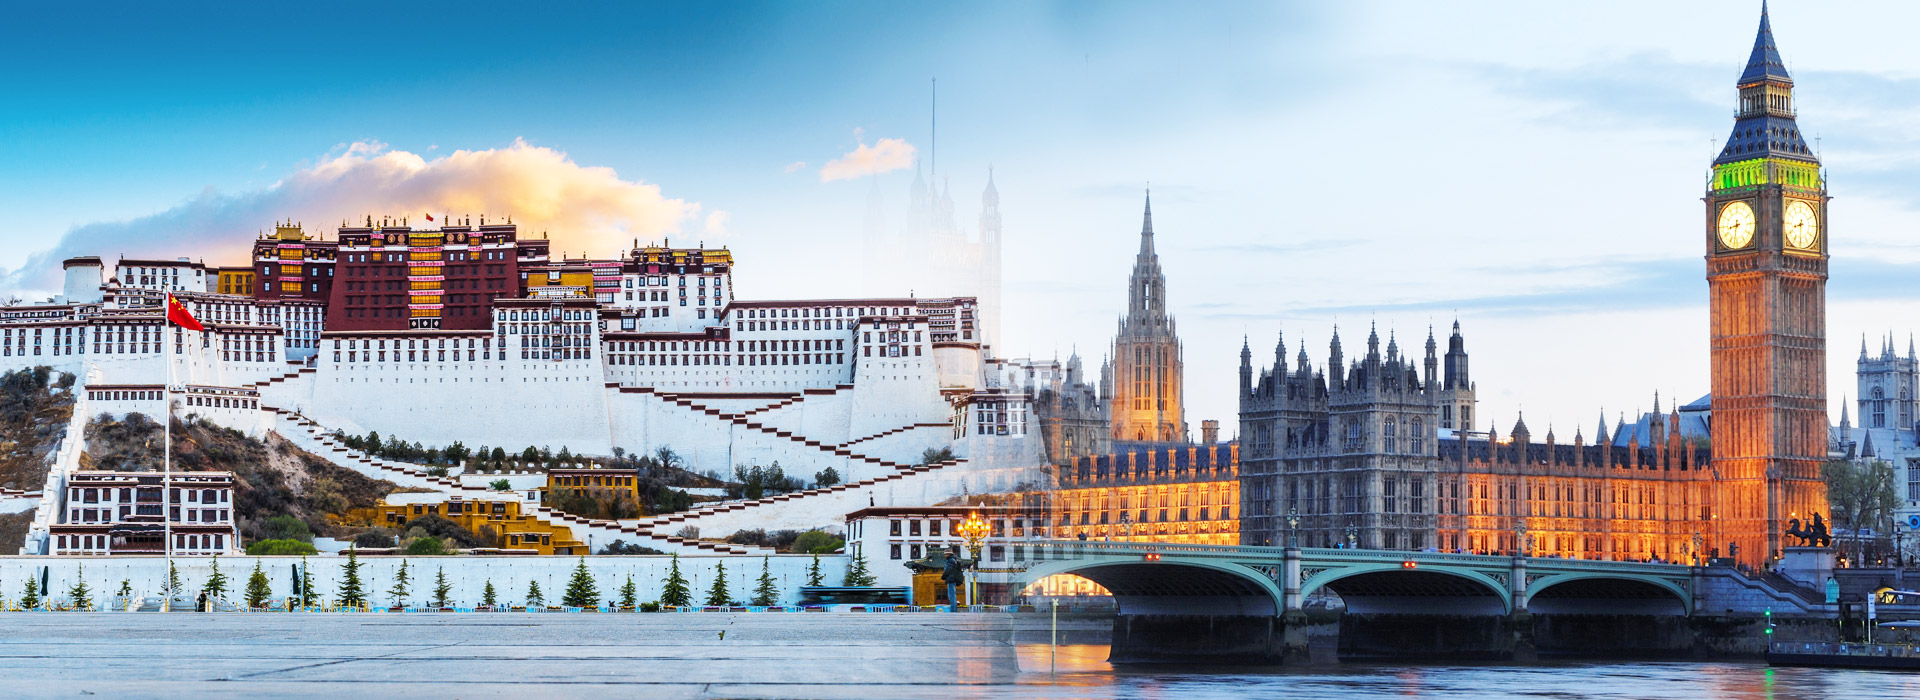 Tibet Tour From Great Britain